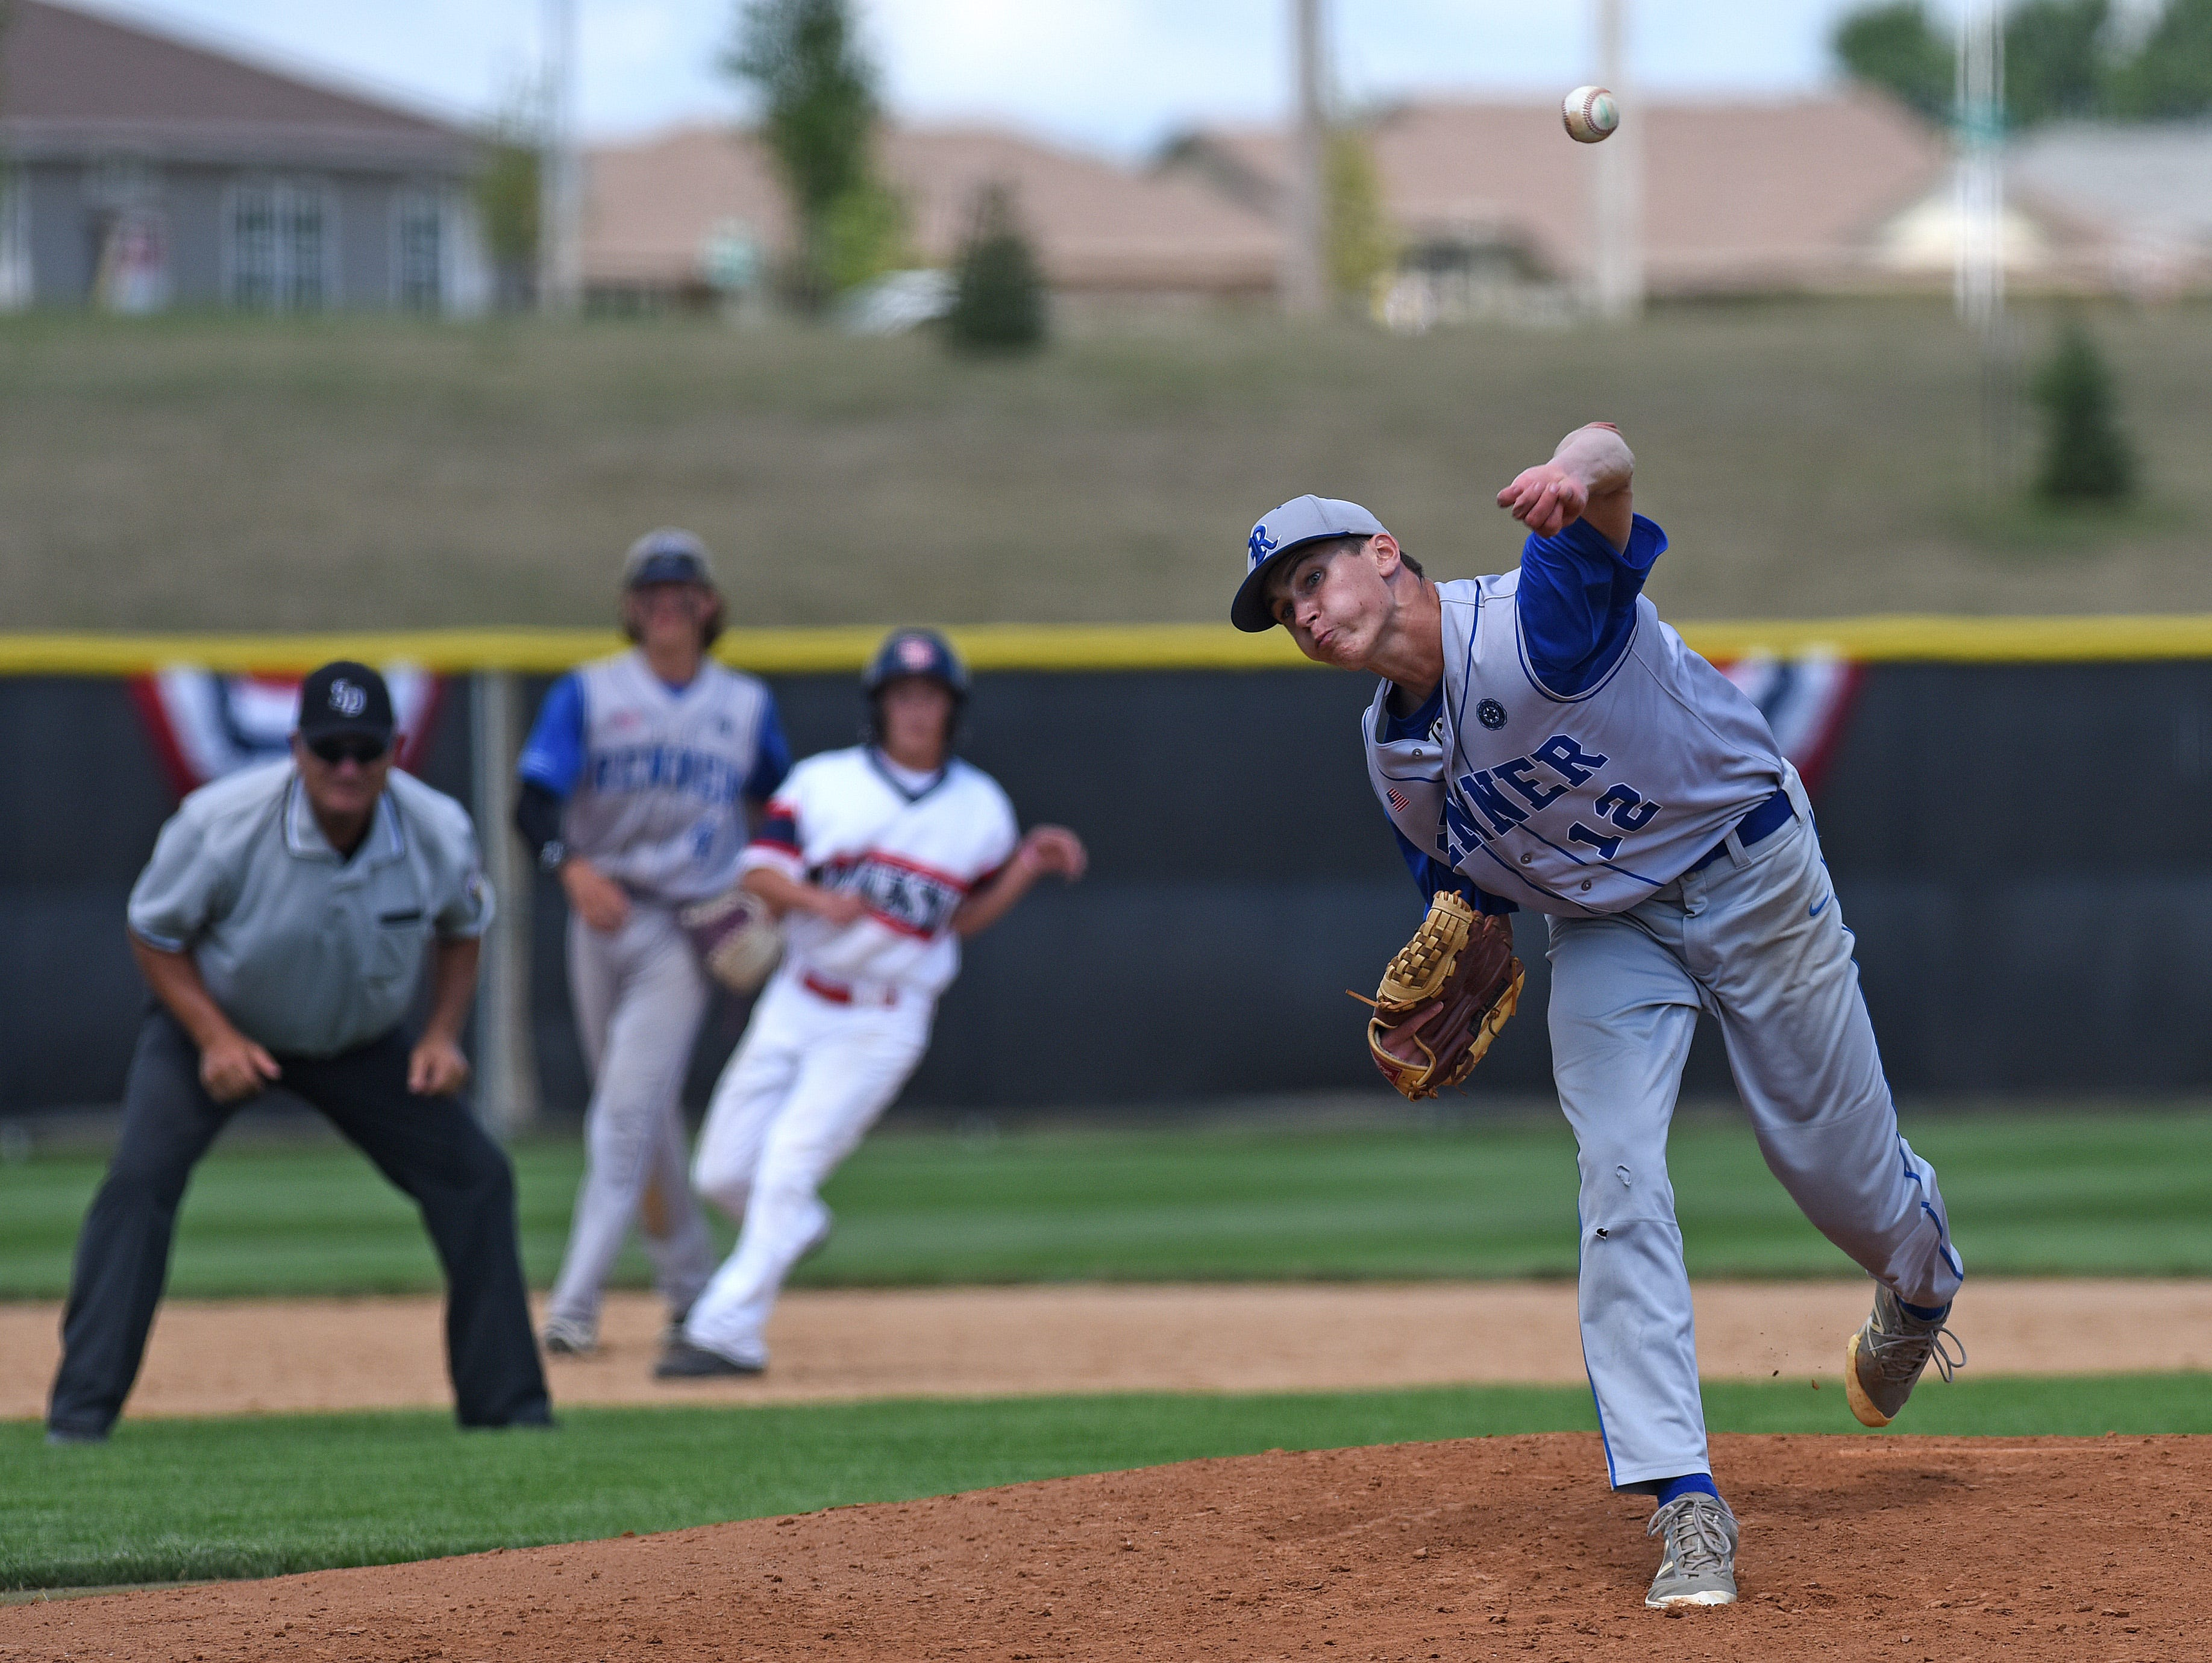 Runner's #12 Spencer Koelewyn pitches against Sioux Falls Post 15 West during American Legion Class A Baseball State Tournament at Harmodon Park in Sioux Falls, S.D., Wednesday, July 27, 2016.